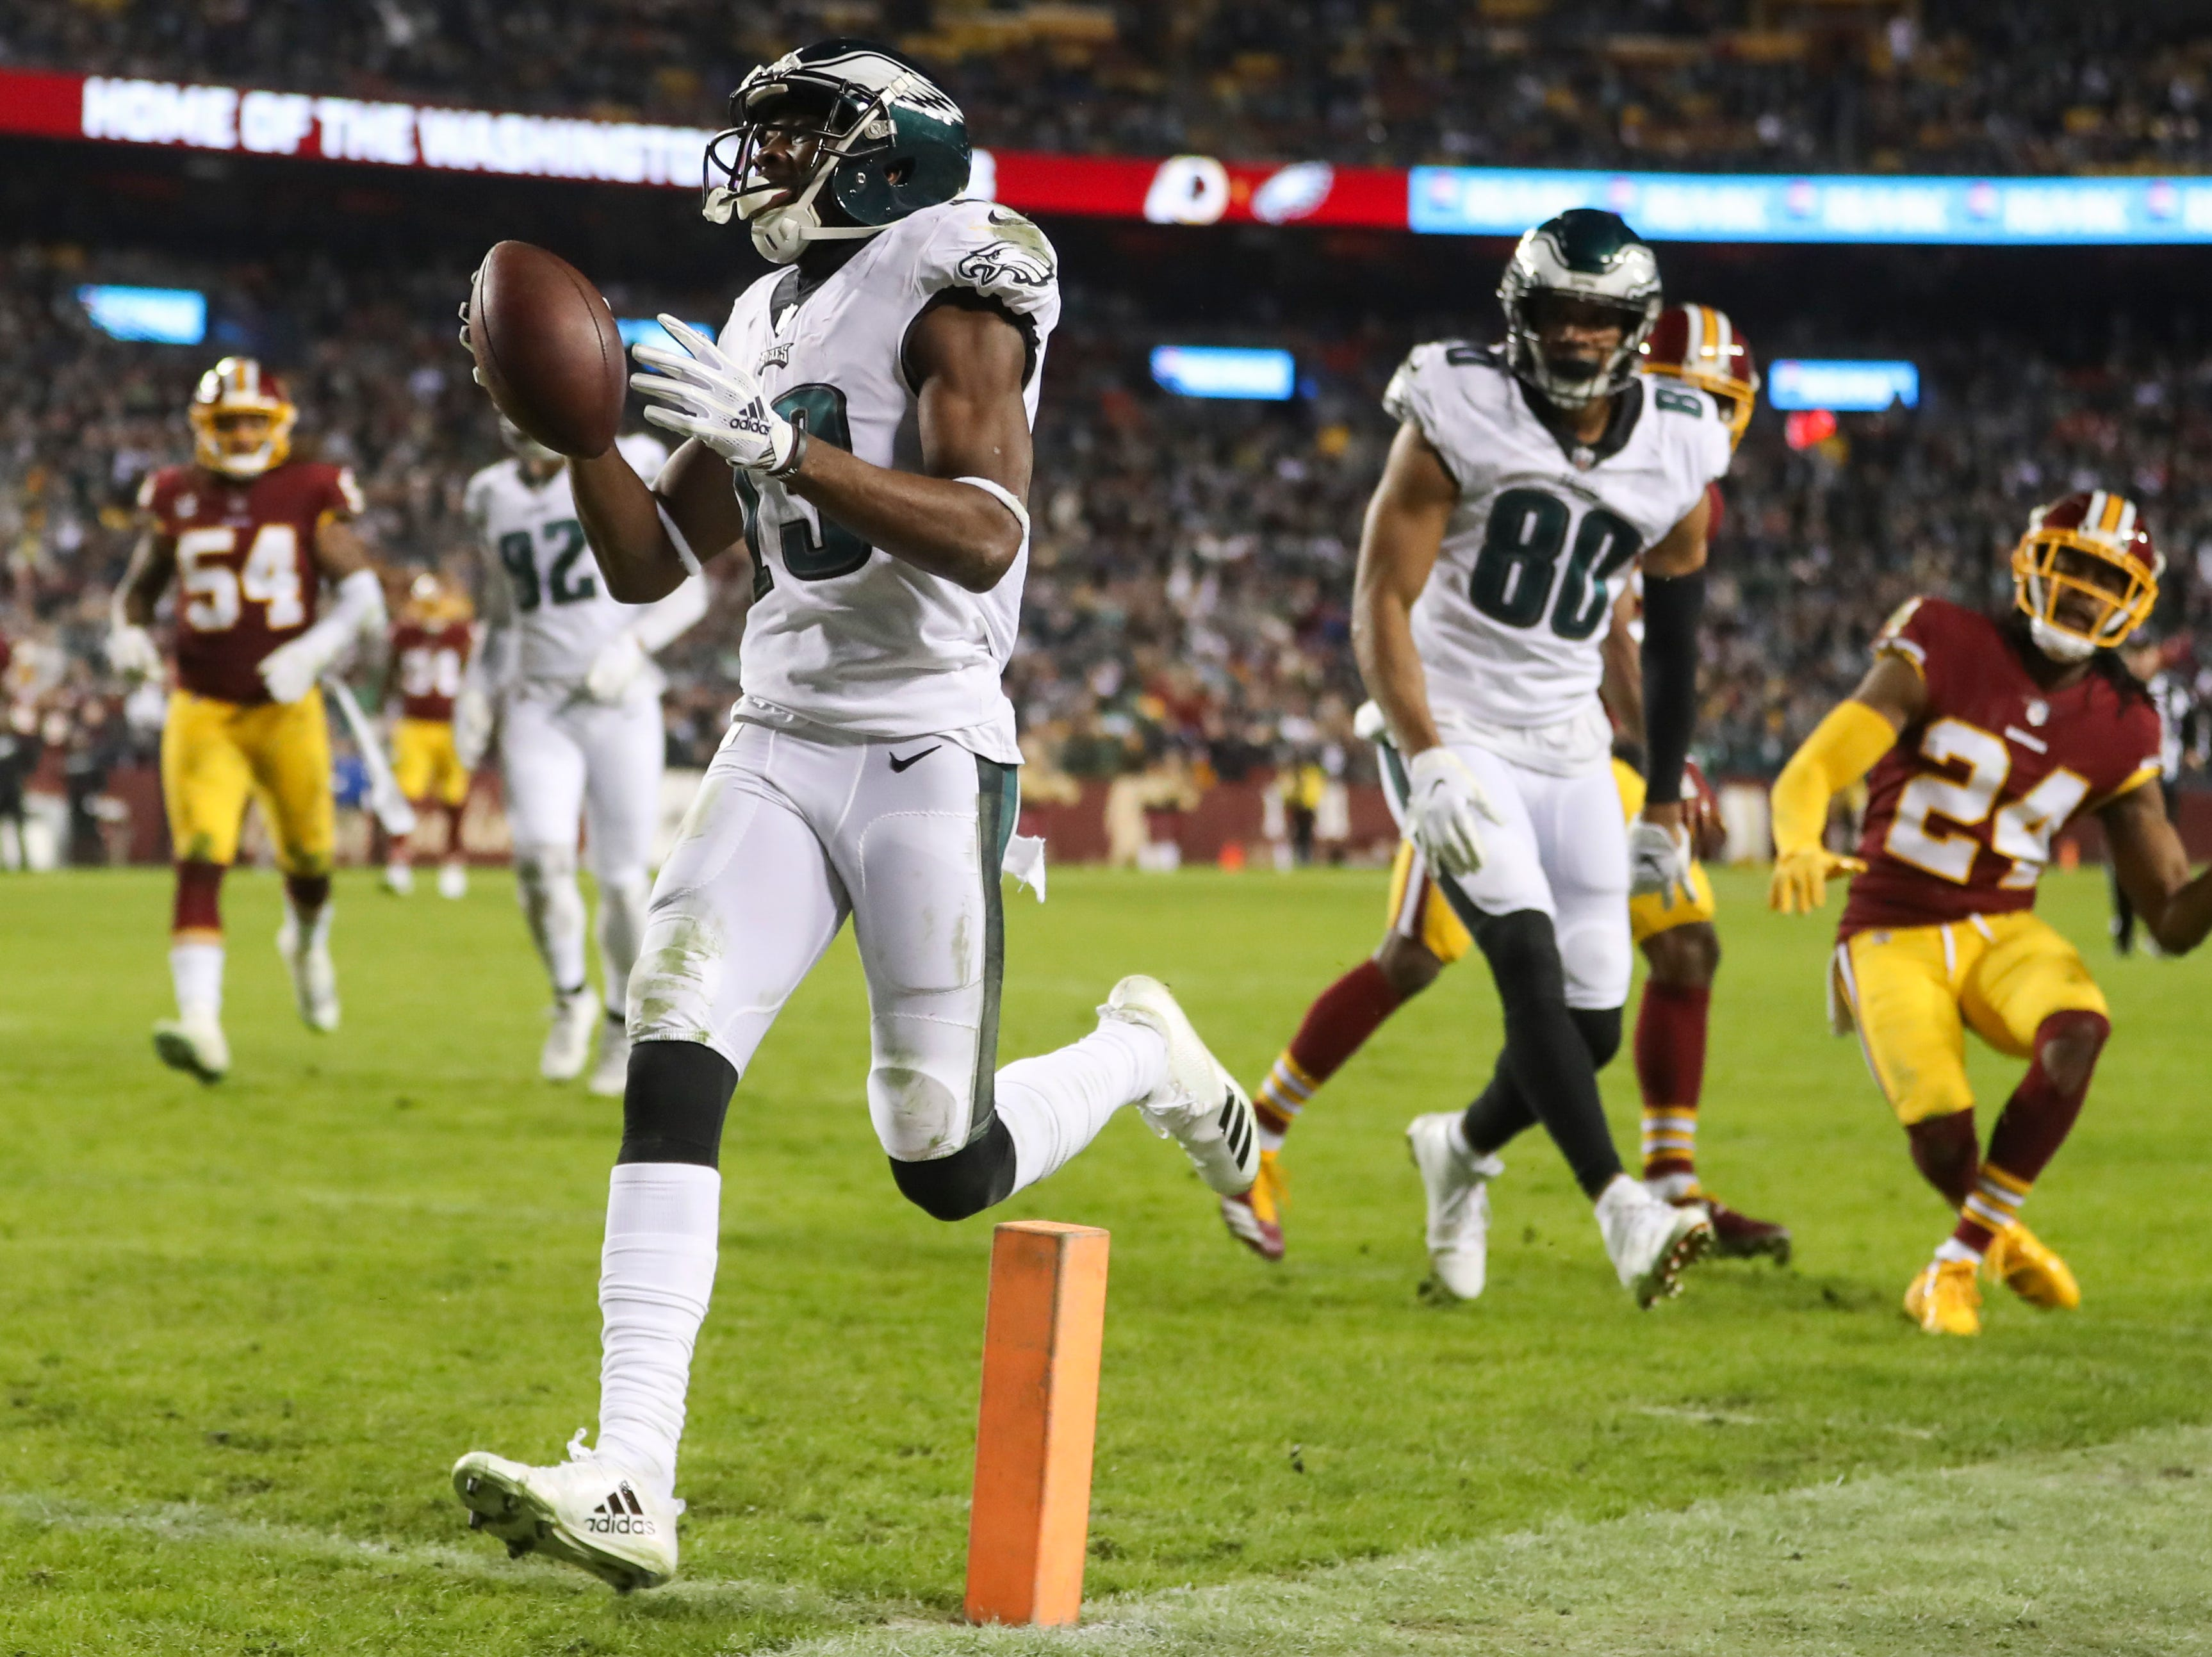 Philadelphia Eagles wide receiver Nelson Agholor (13) carries the ball into the end zone for a touchdown during the second half of the NFL football game against the Washington Redskins, Sunday, Dec. 30, 2018 in Landover, Md. (AP Photo/Andrew Harnik)